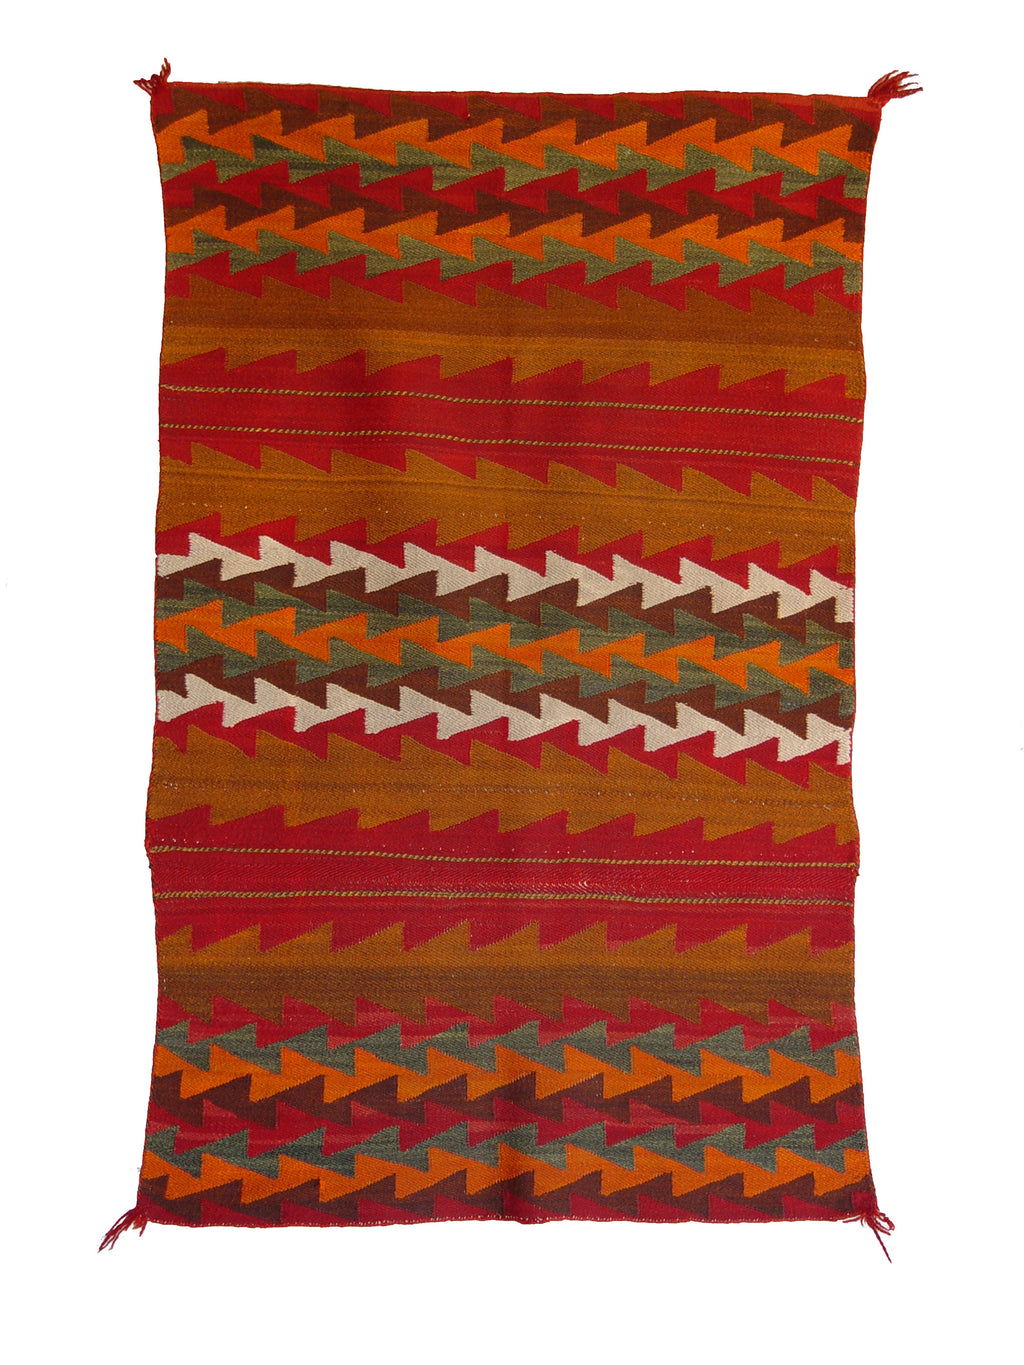 Antique Navajo Double Saddle Blanket